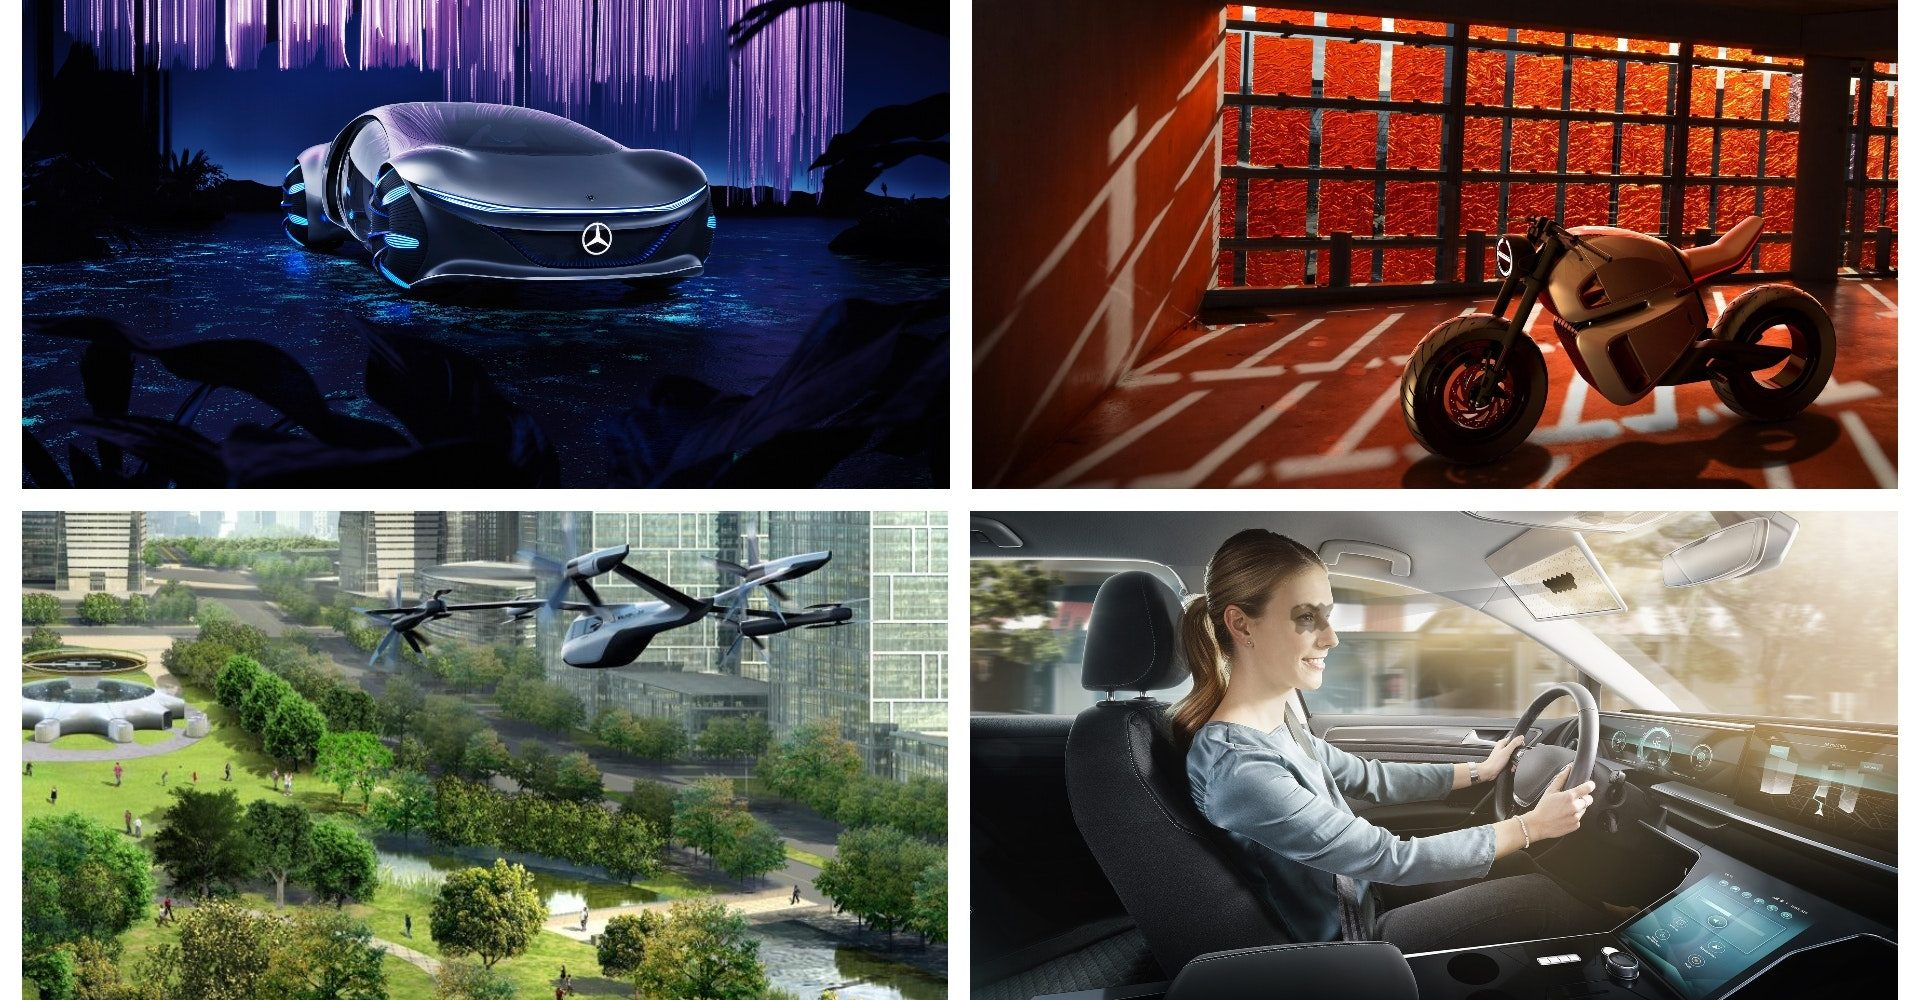 What did the automotive world reveal at CES 2020?